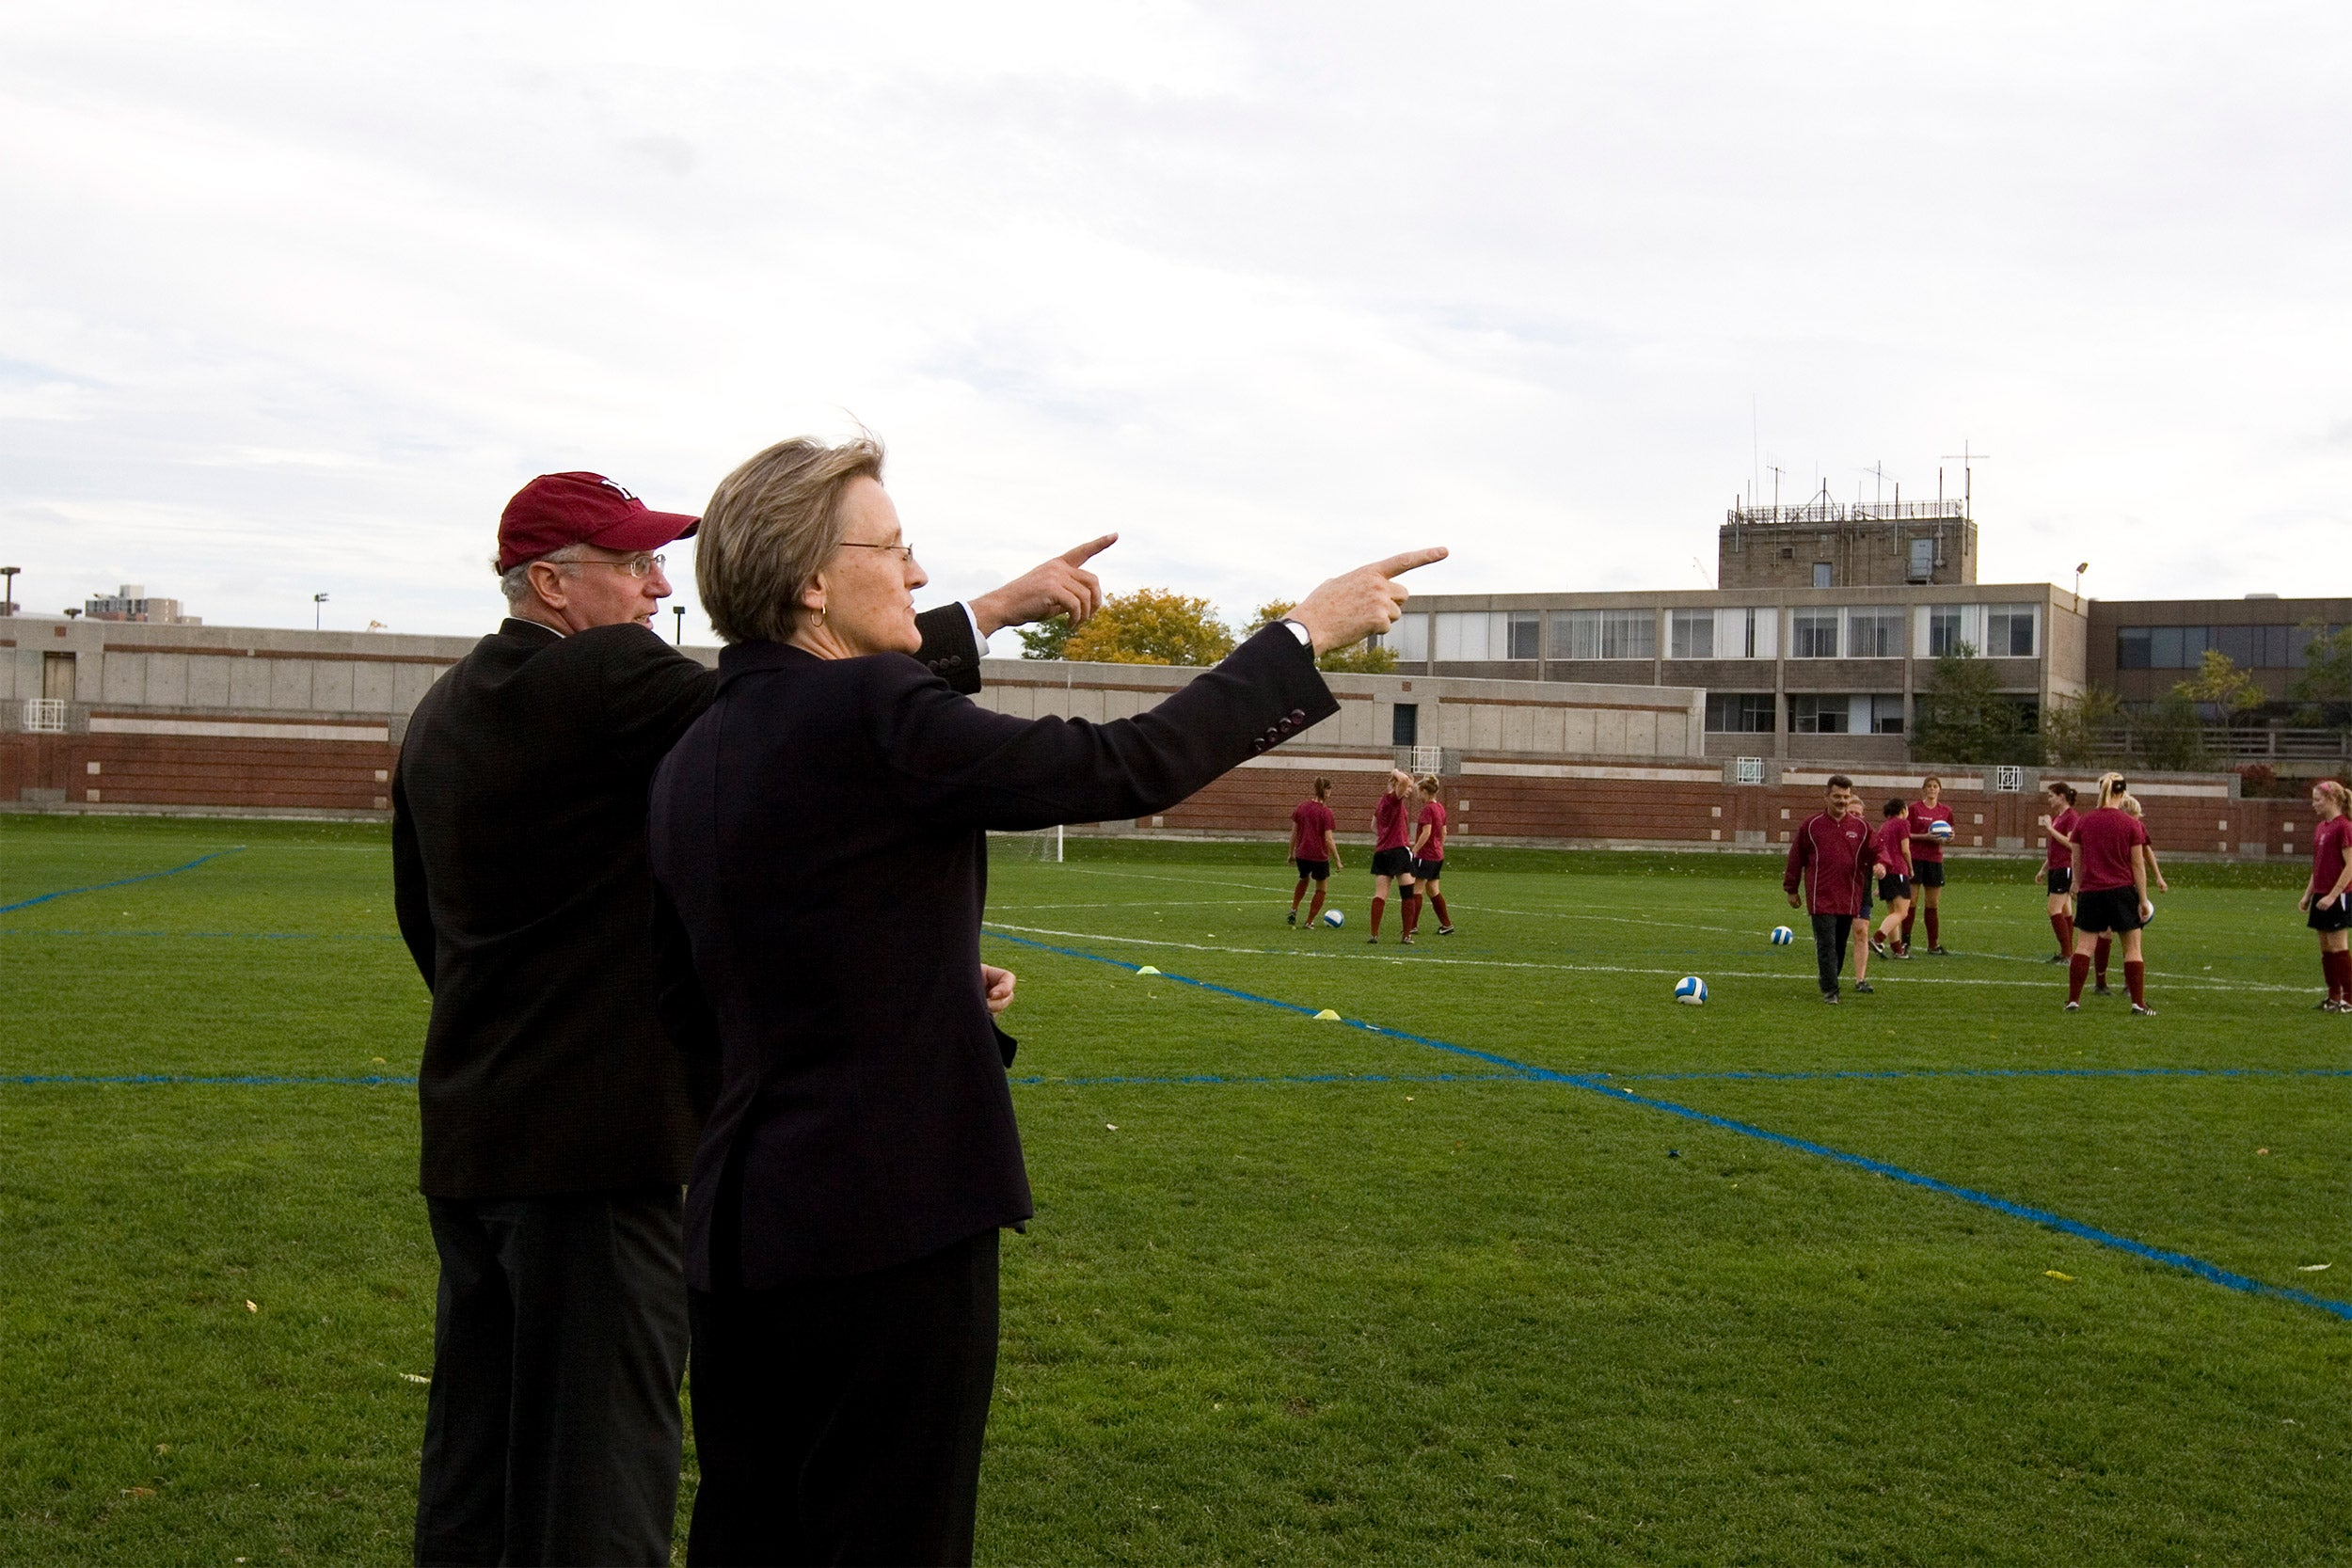 Bob Scalise and Drew Faust.